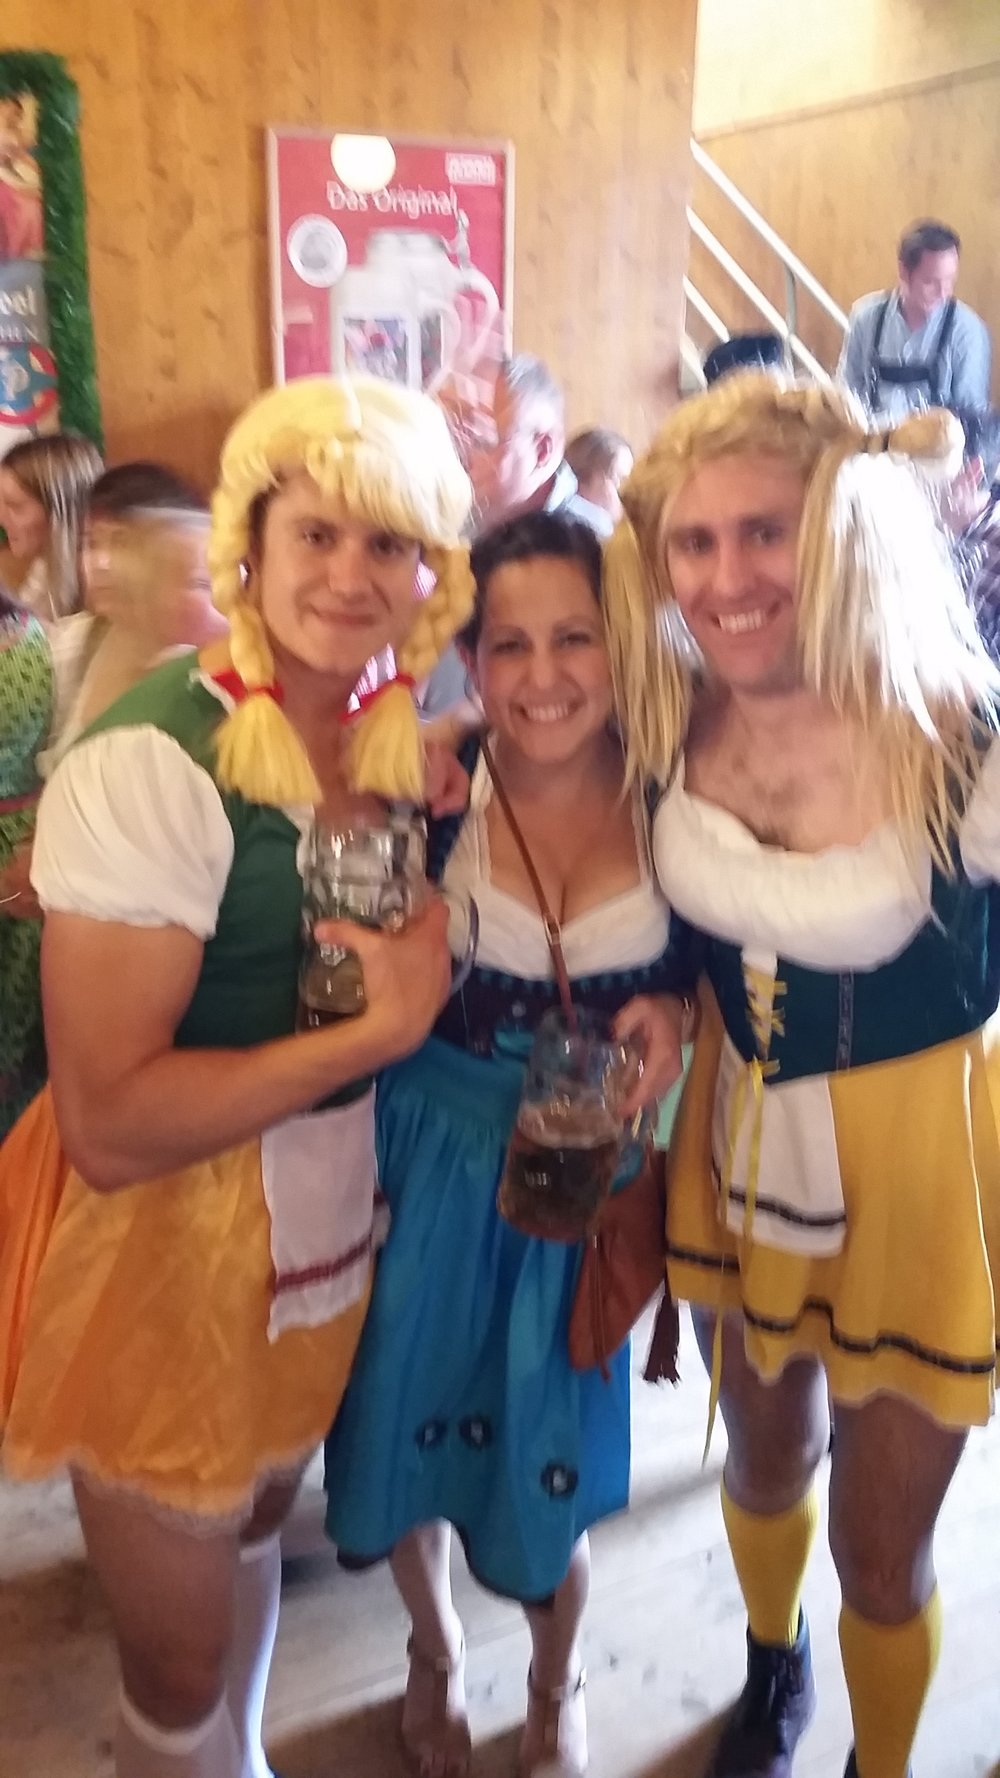 Sandwiched by a couple damsels in Munich!